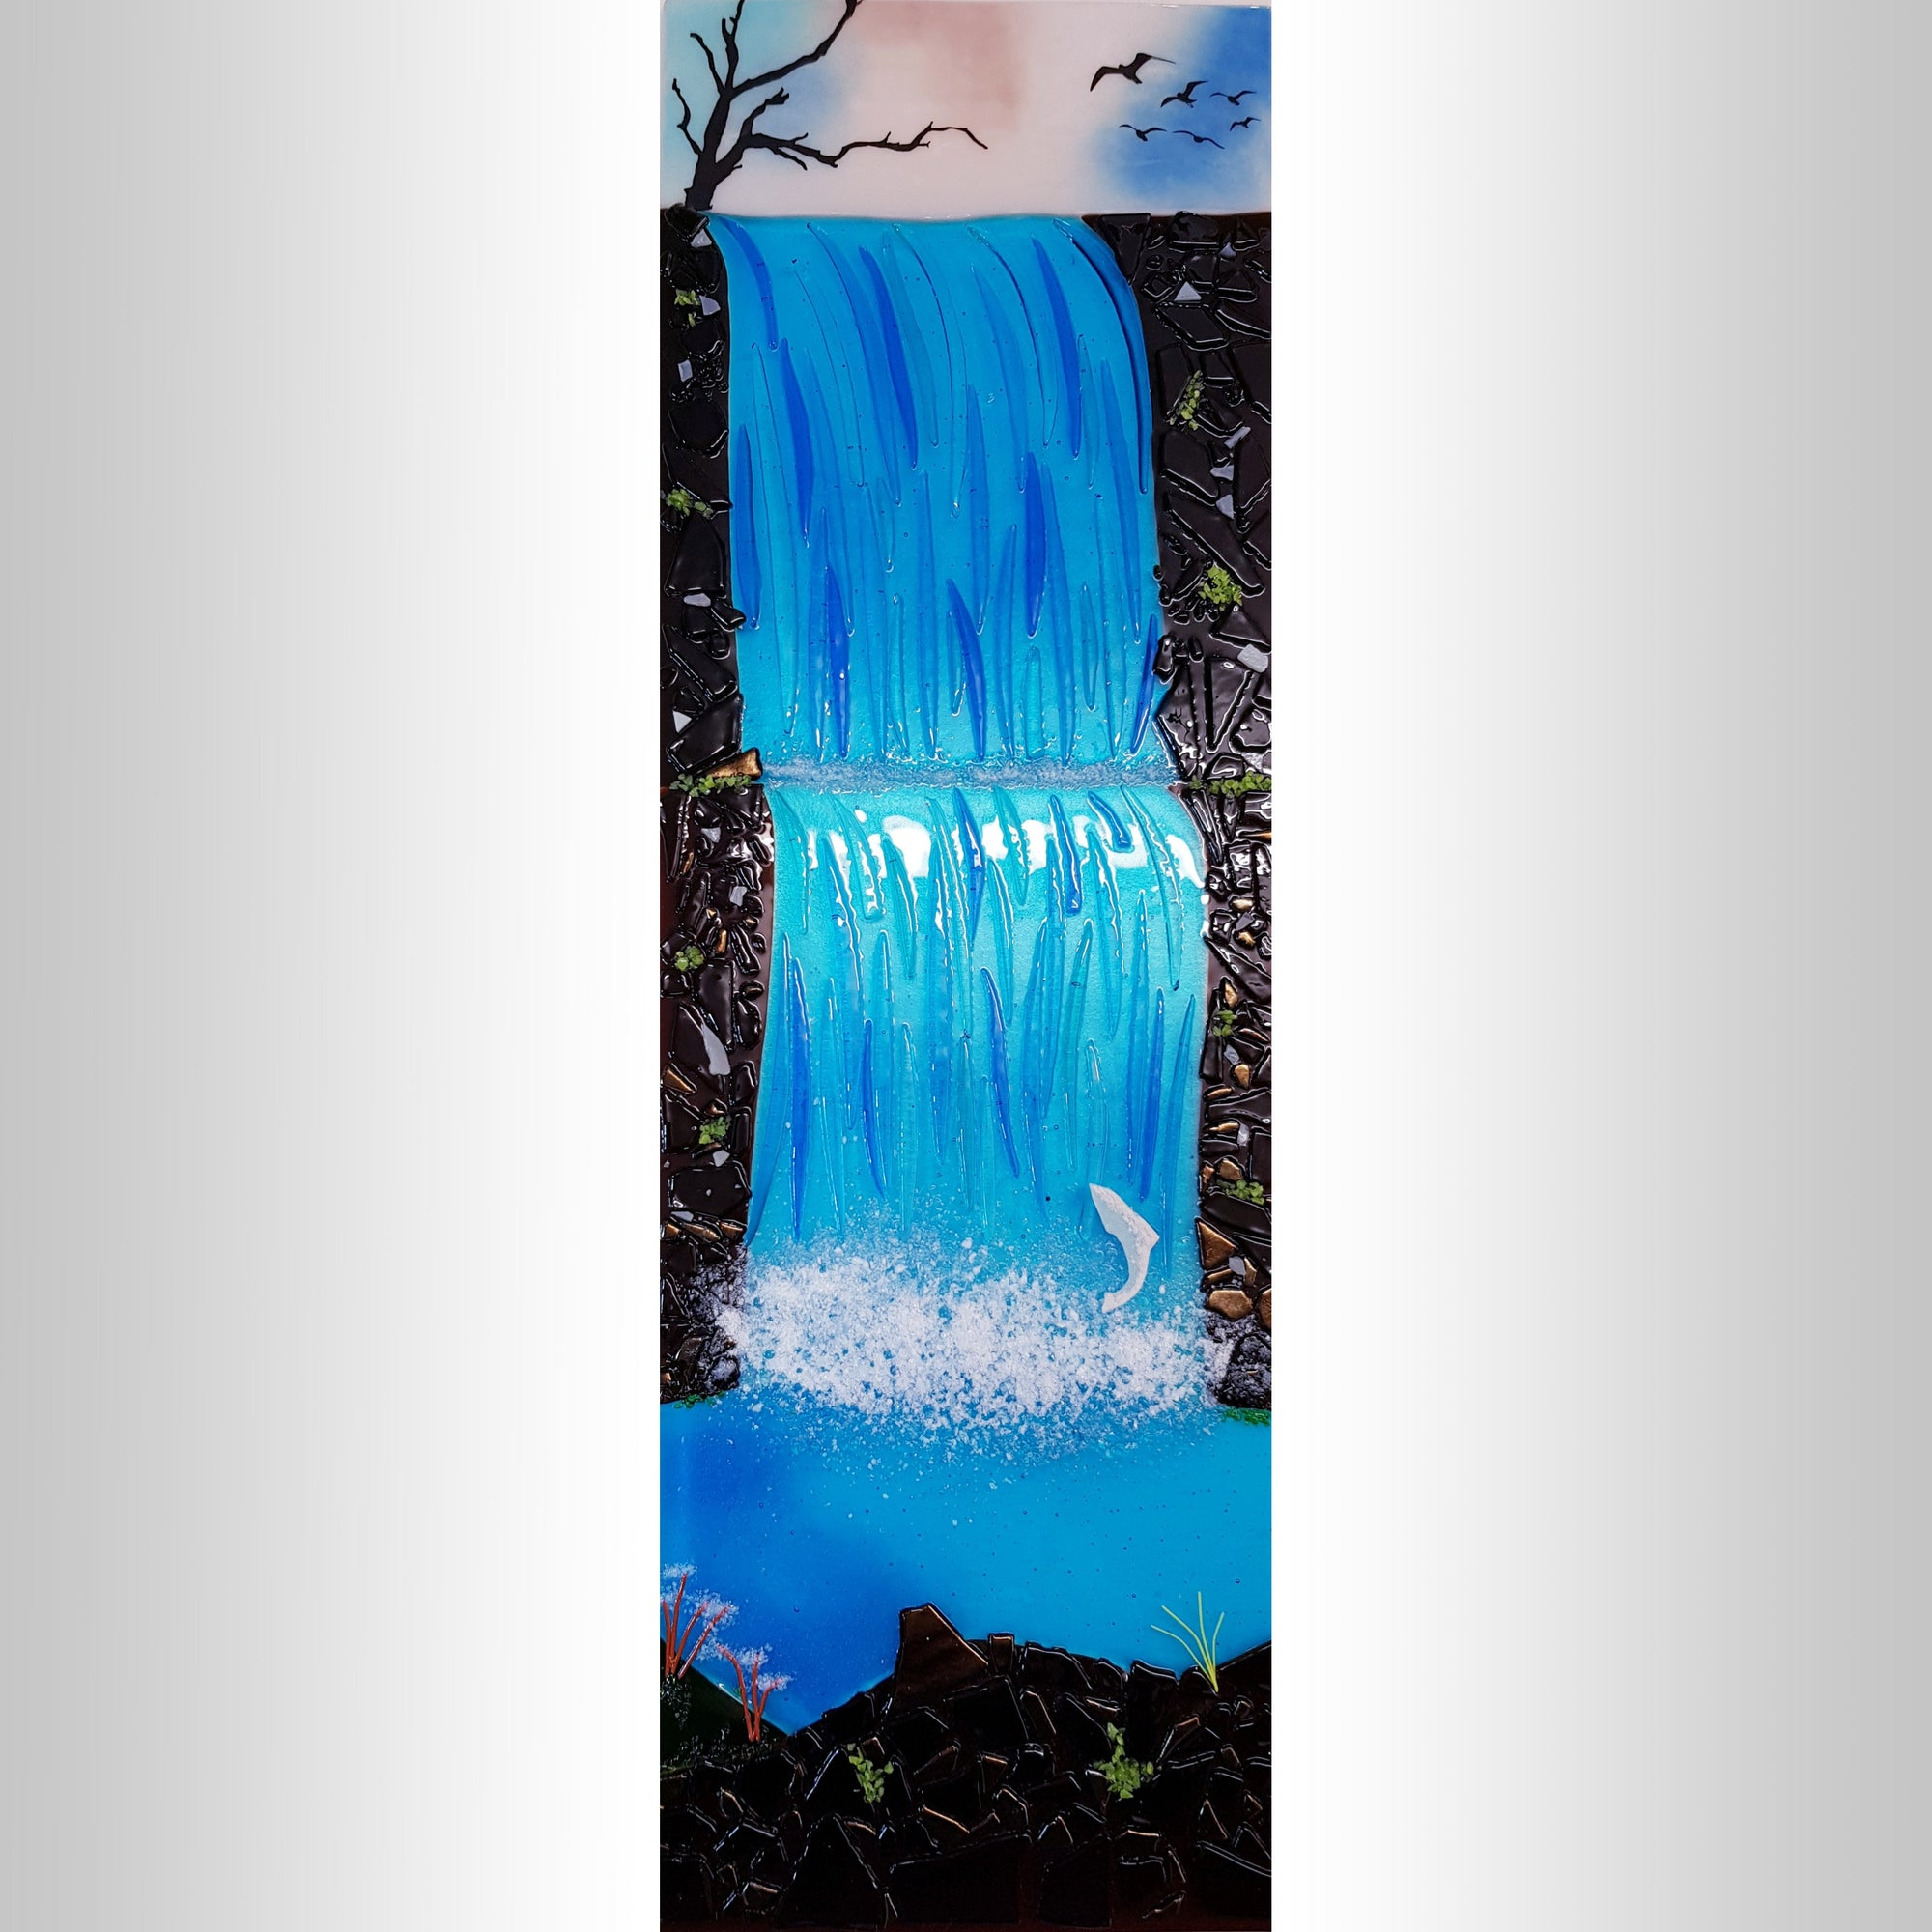 A fused glass wall panel showing the cascading Aasleagh Falls, made by Connemara Blue